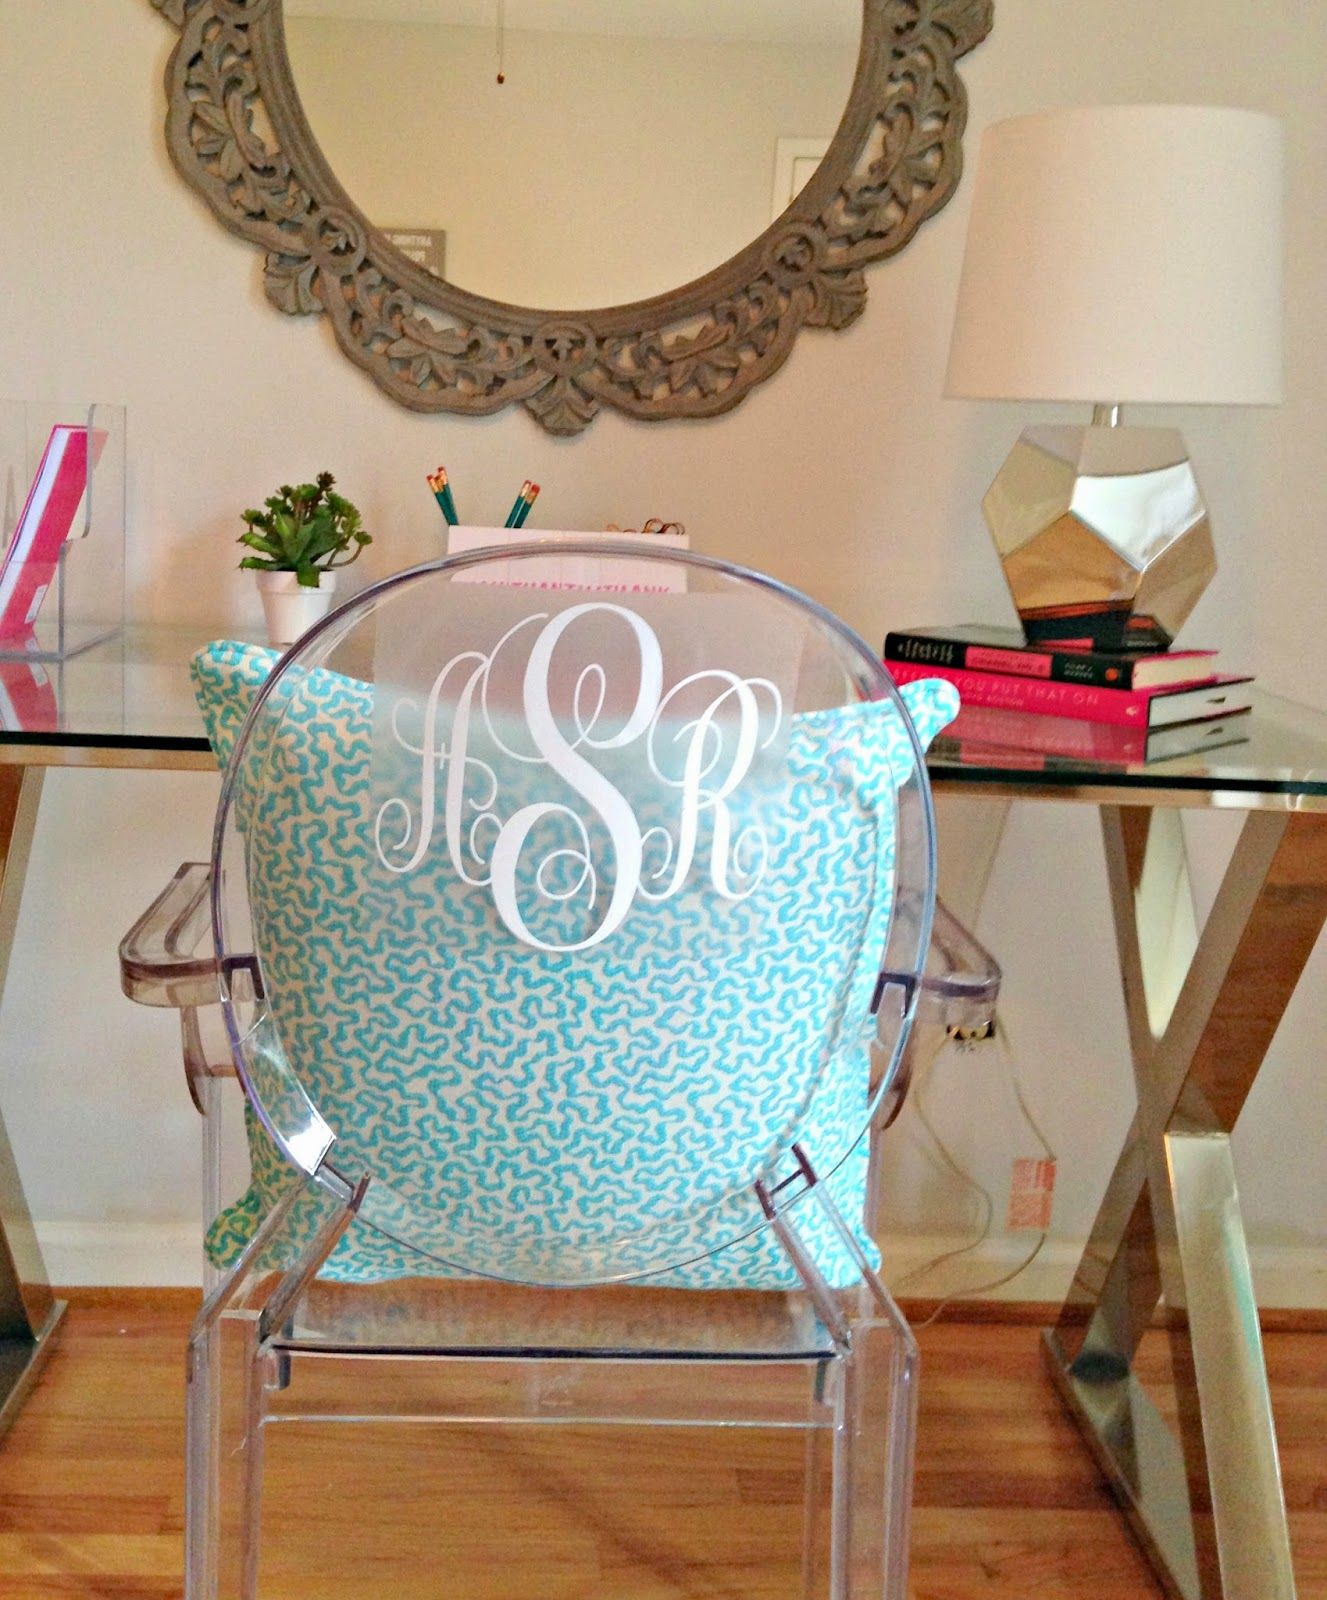 Teen Girl s room A Before and After Ghost chair monogram